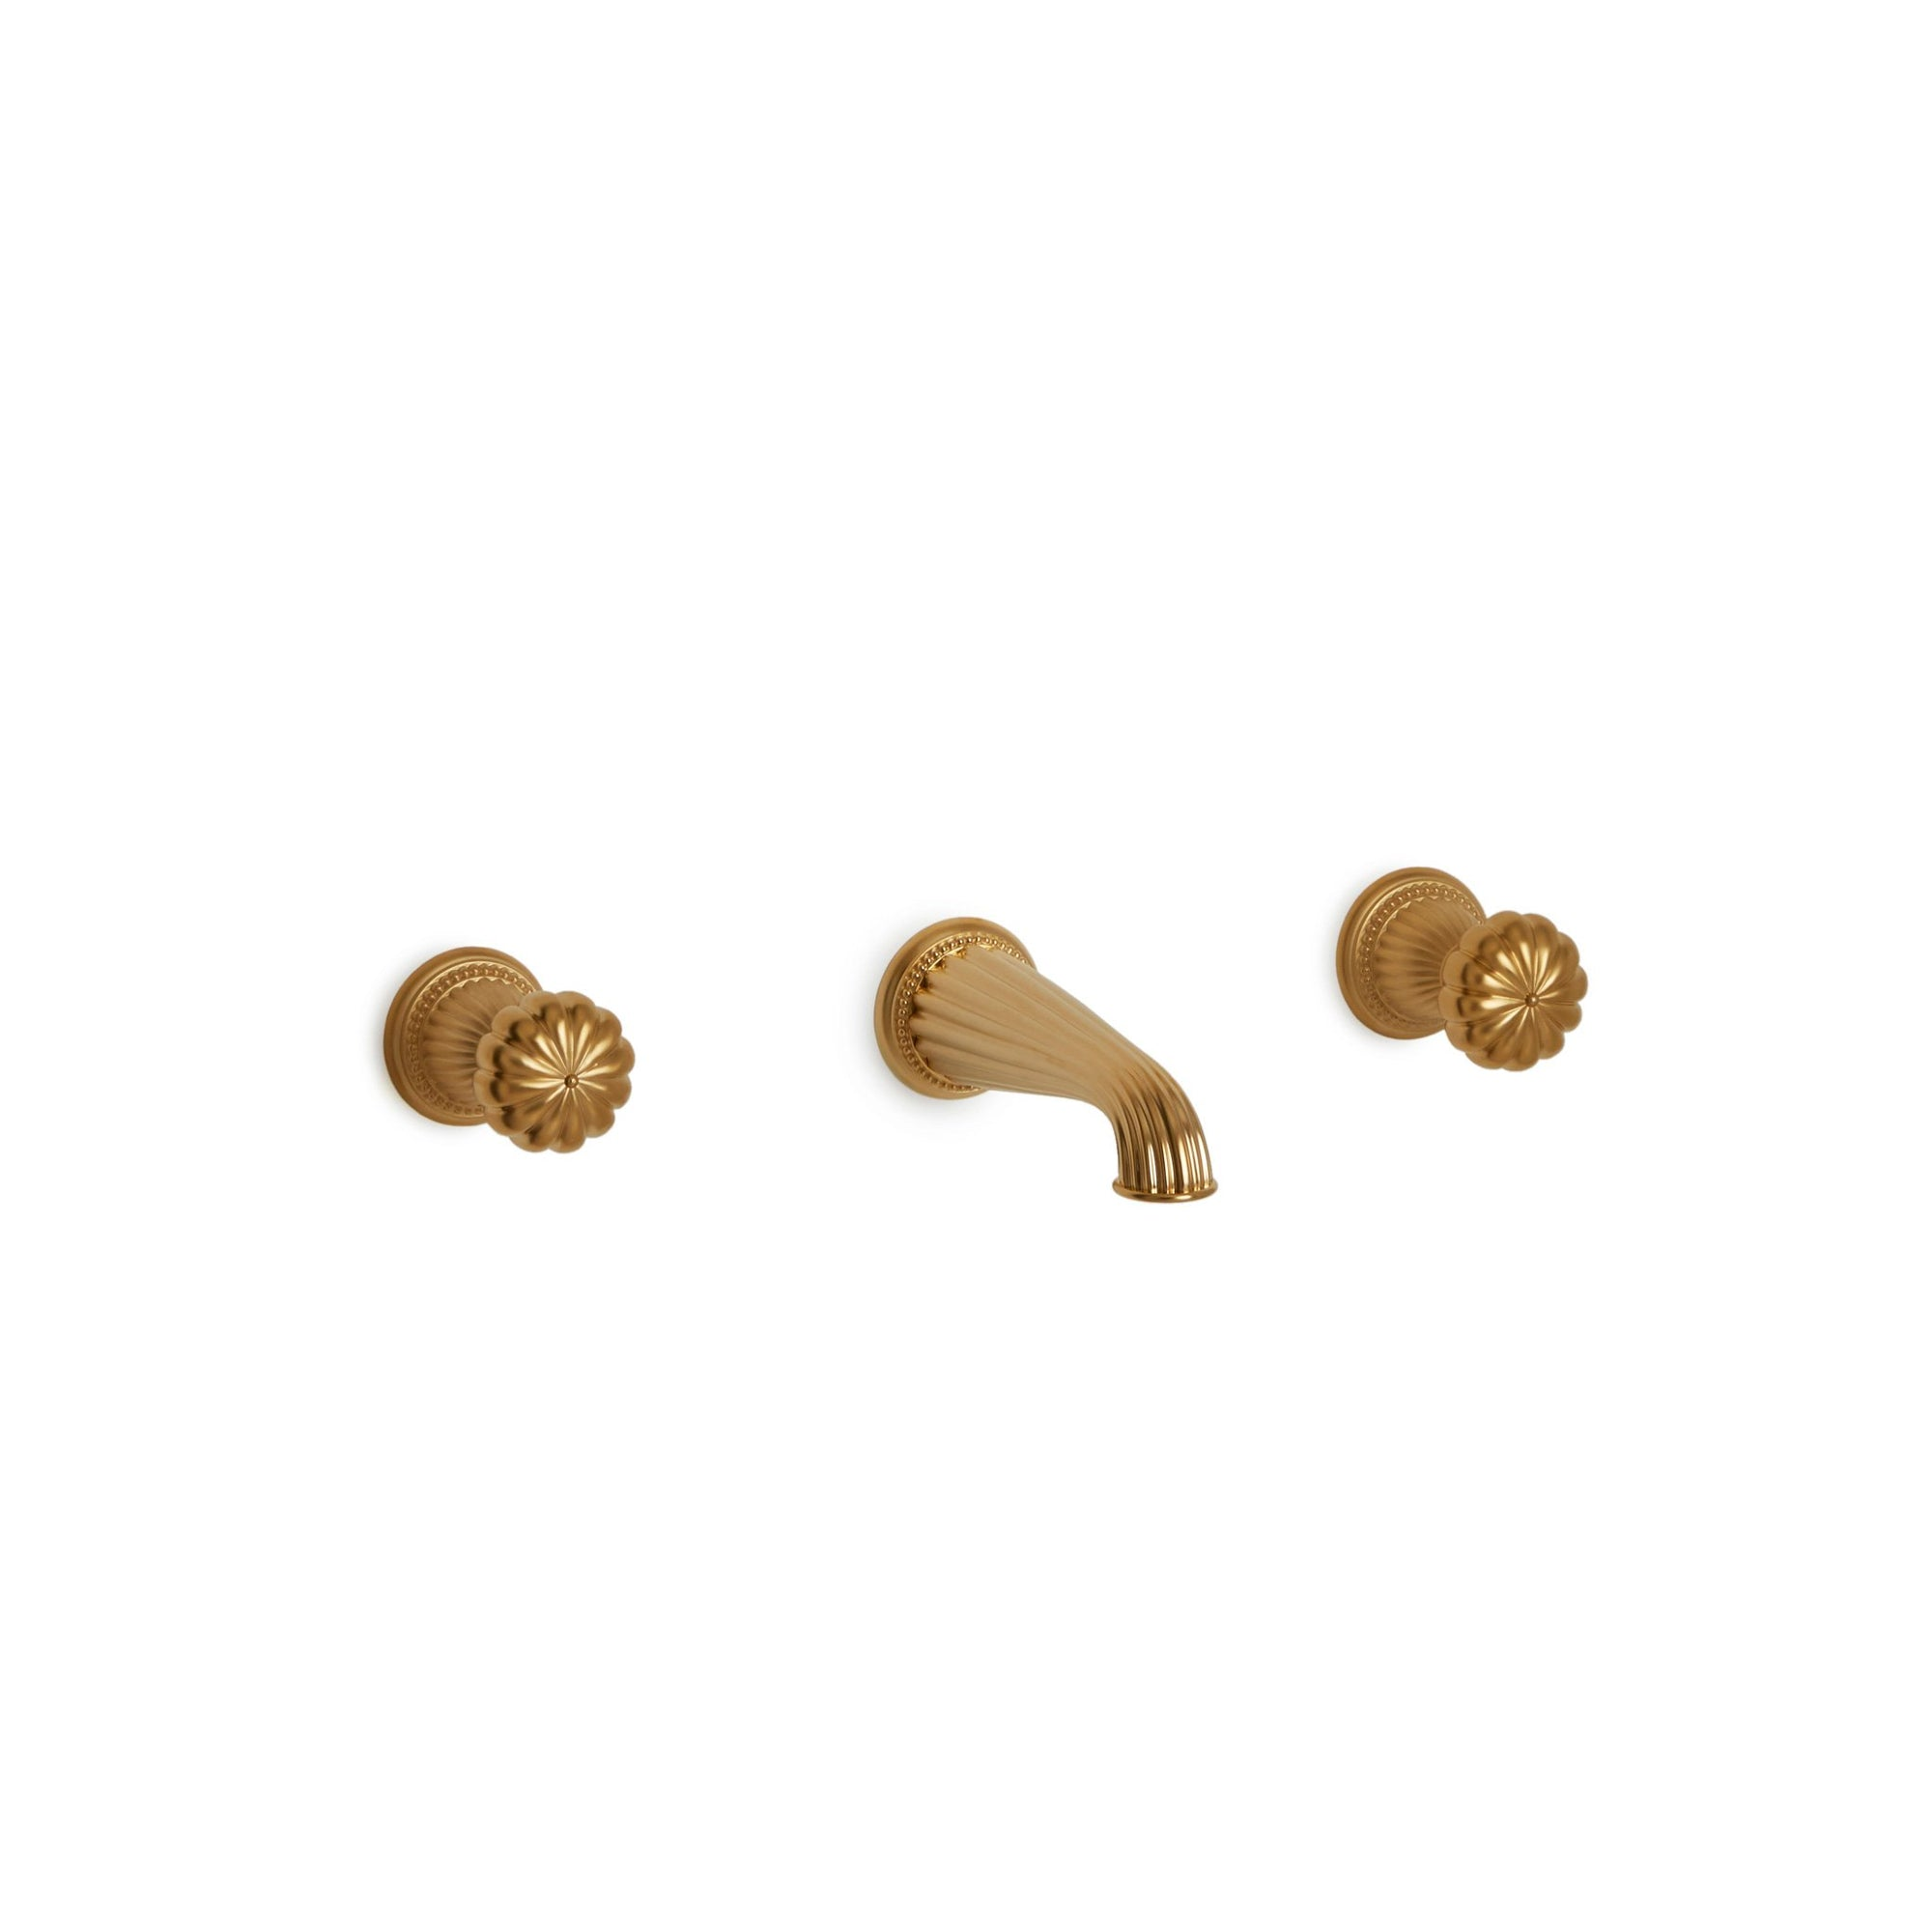 0910WBS-GP Sherle Wagner International Melon Knob Wall Mount Faucet Set in Gold Plate metal finish